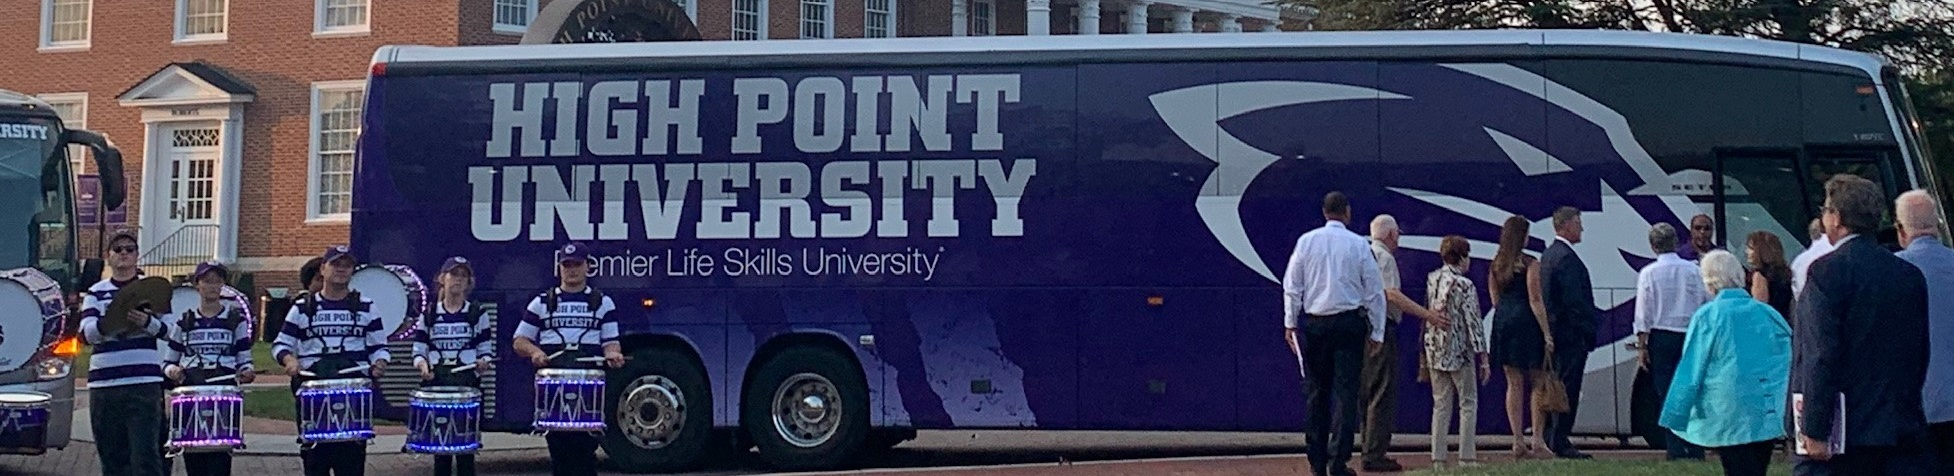 high point university bus